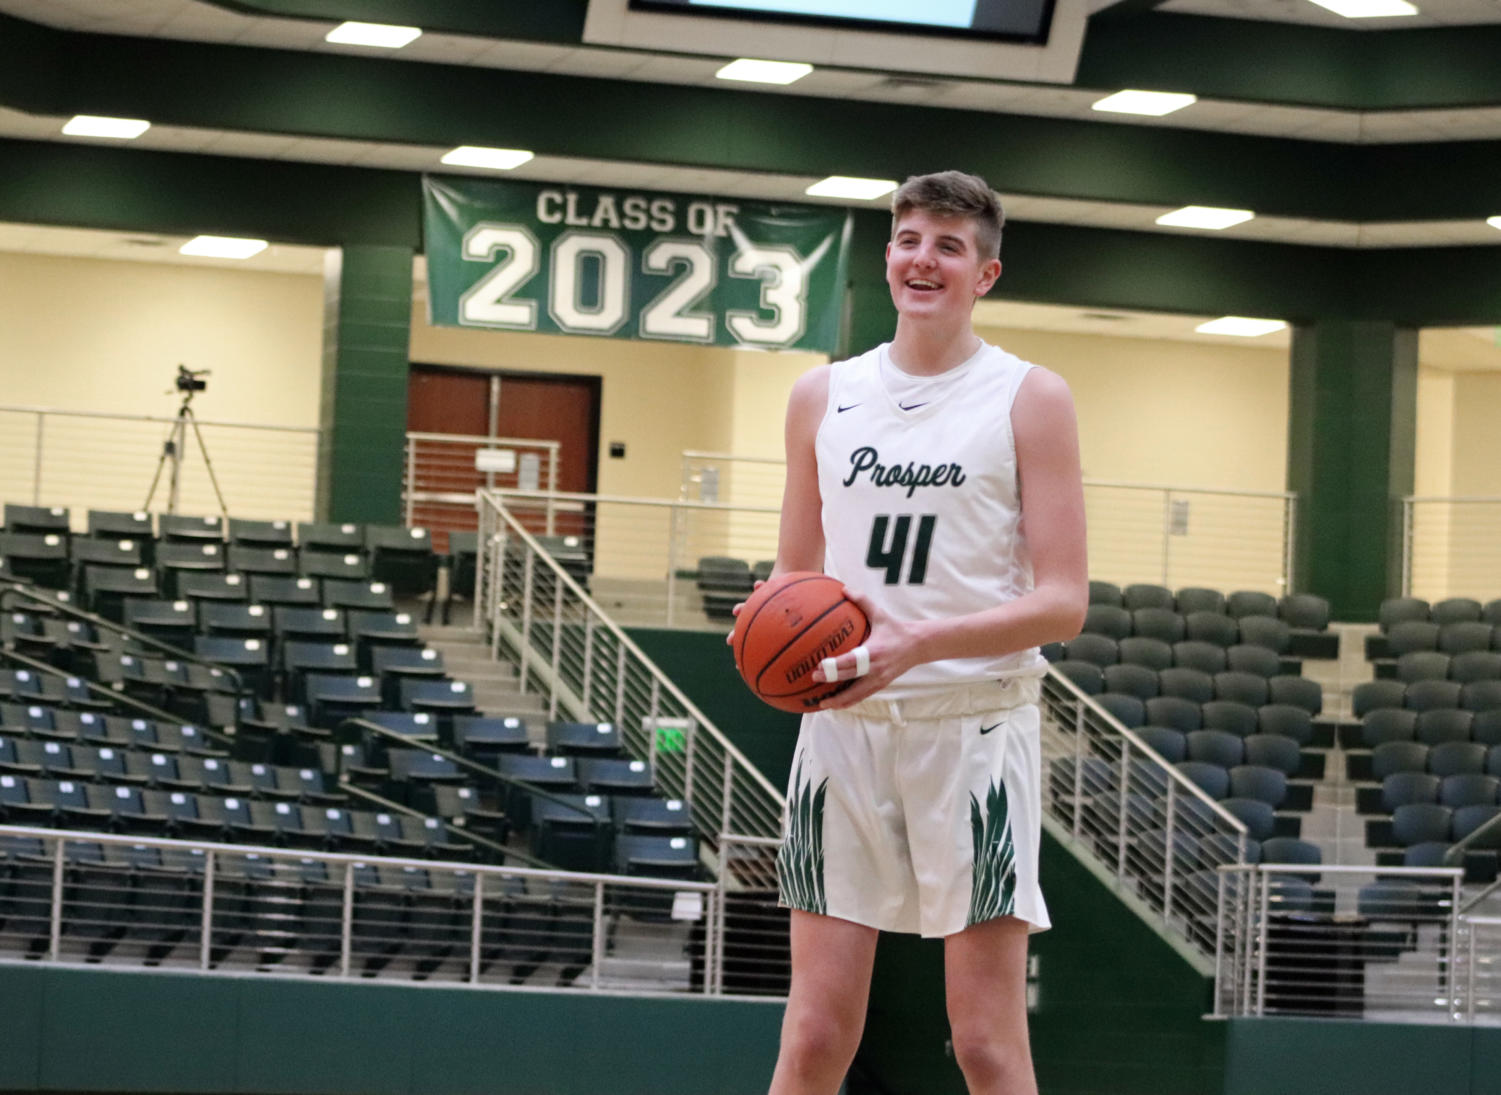 Smiling at his teammates, Conner Kern, No. 41, takes some shots before second half. Kern got multiple rebounds and put up a few points to bring the Eagles to victory against the Rams. The varsity Eagles play on Dec. 5-7 in the PISD Classic.